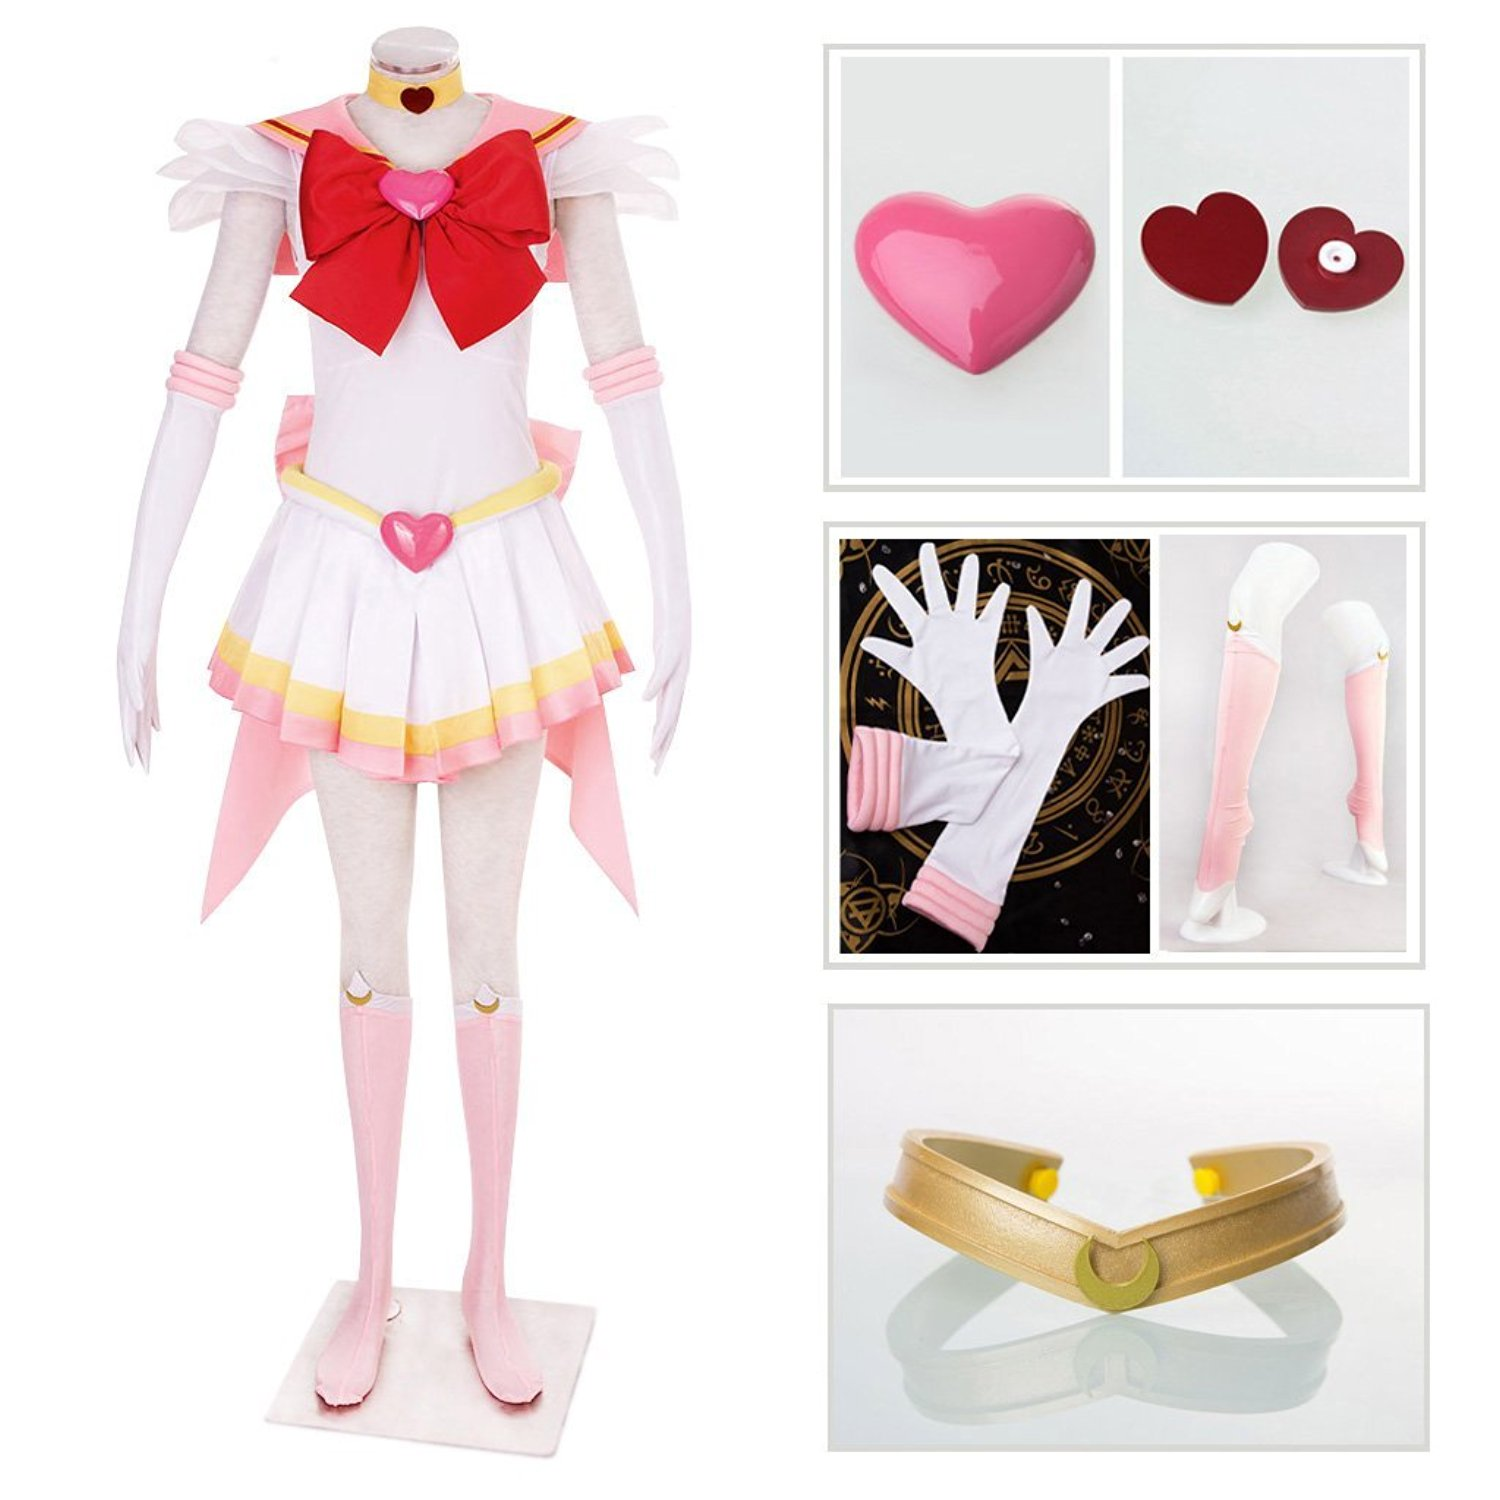 Cheap Chibi Moon Cosplay Find Chibi Moon Cosplay Deals On Line At